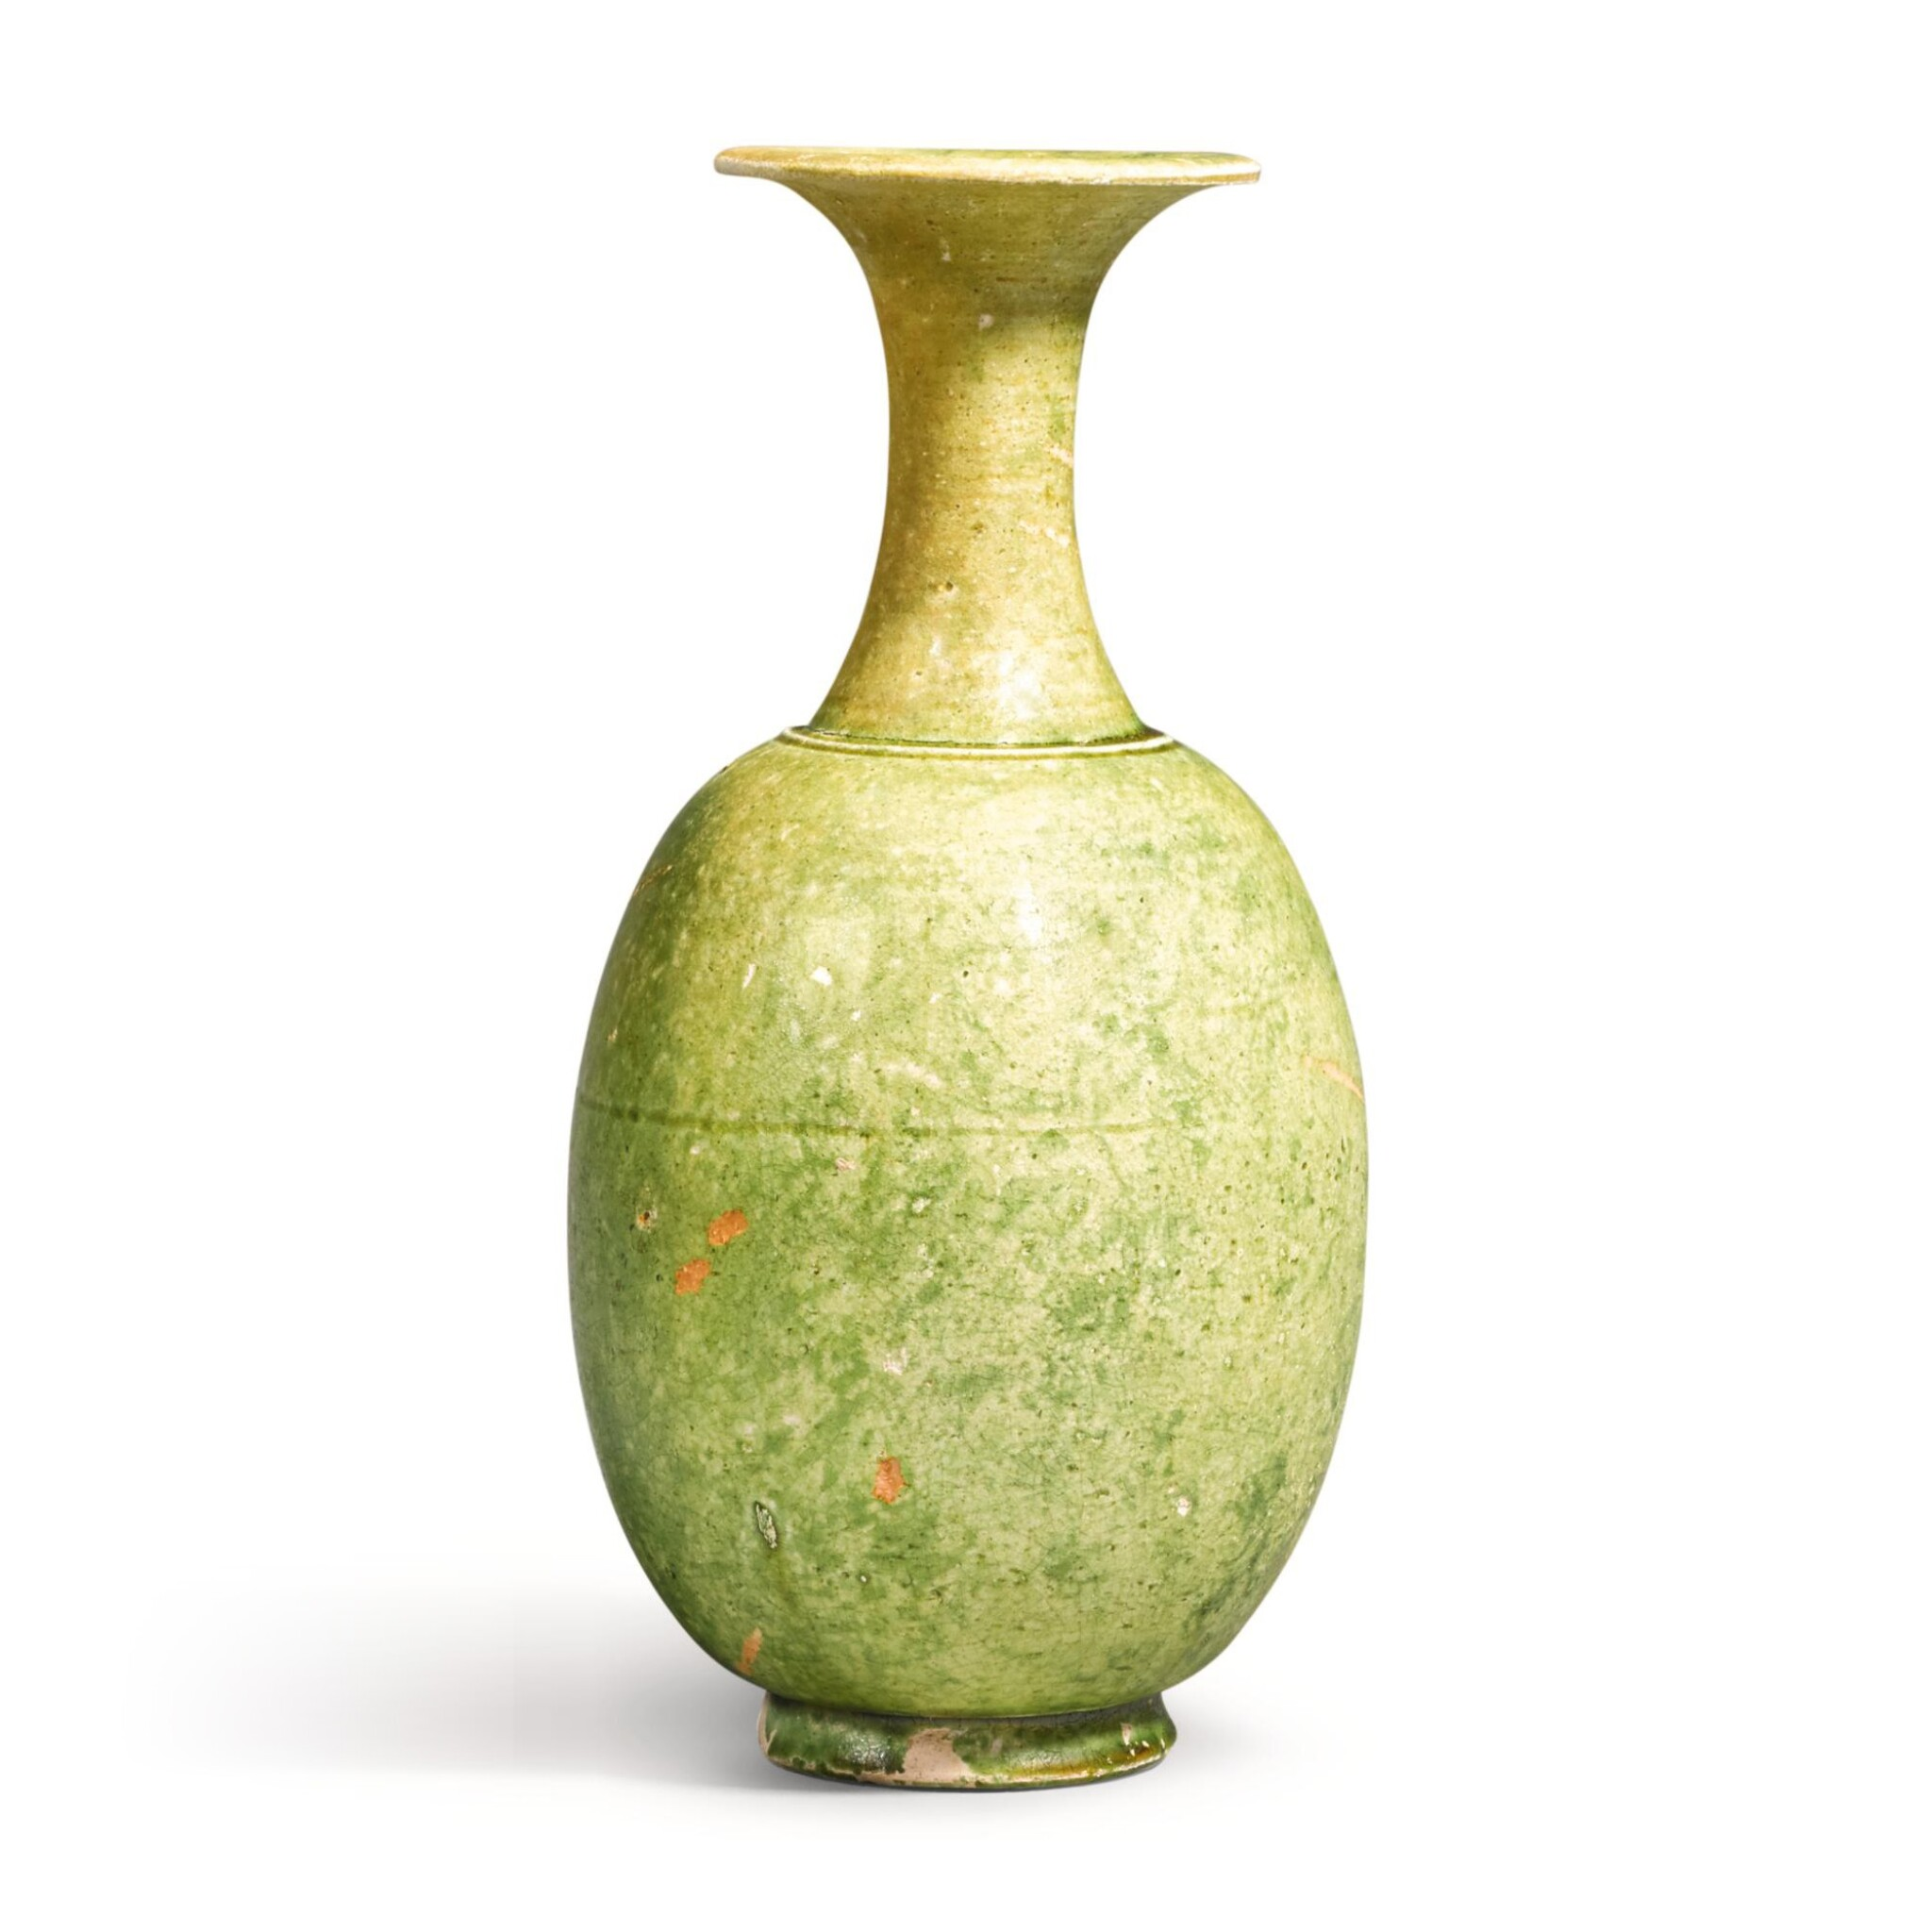 View full screen - View 1 of Lot 218. A RARE GREEN-GLAZED VASE SUI/TANG DYNASTY   隋/唐 綠釉長頸瓶.